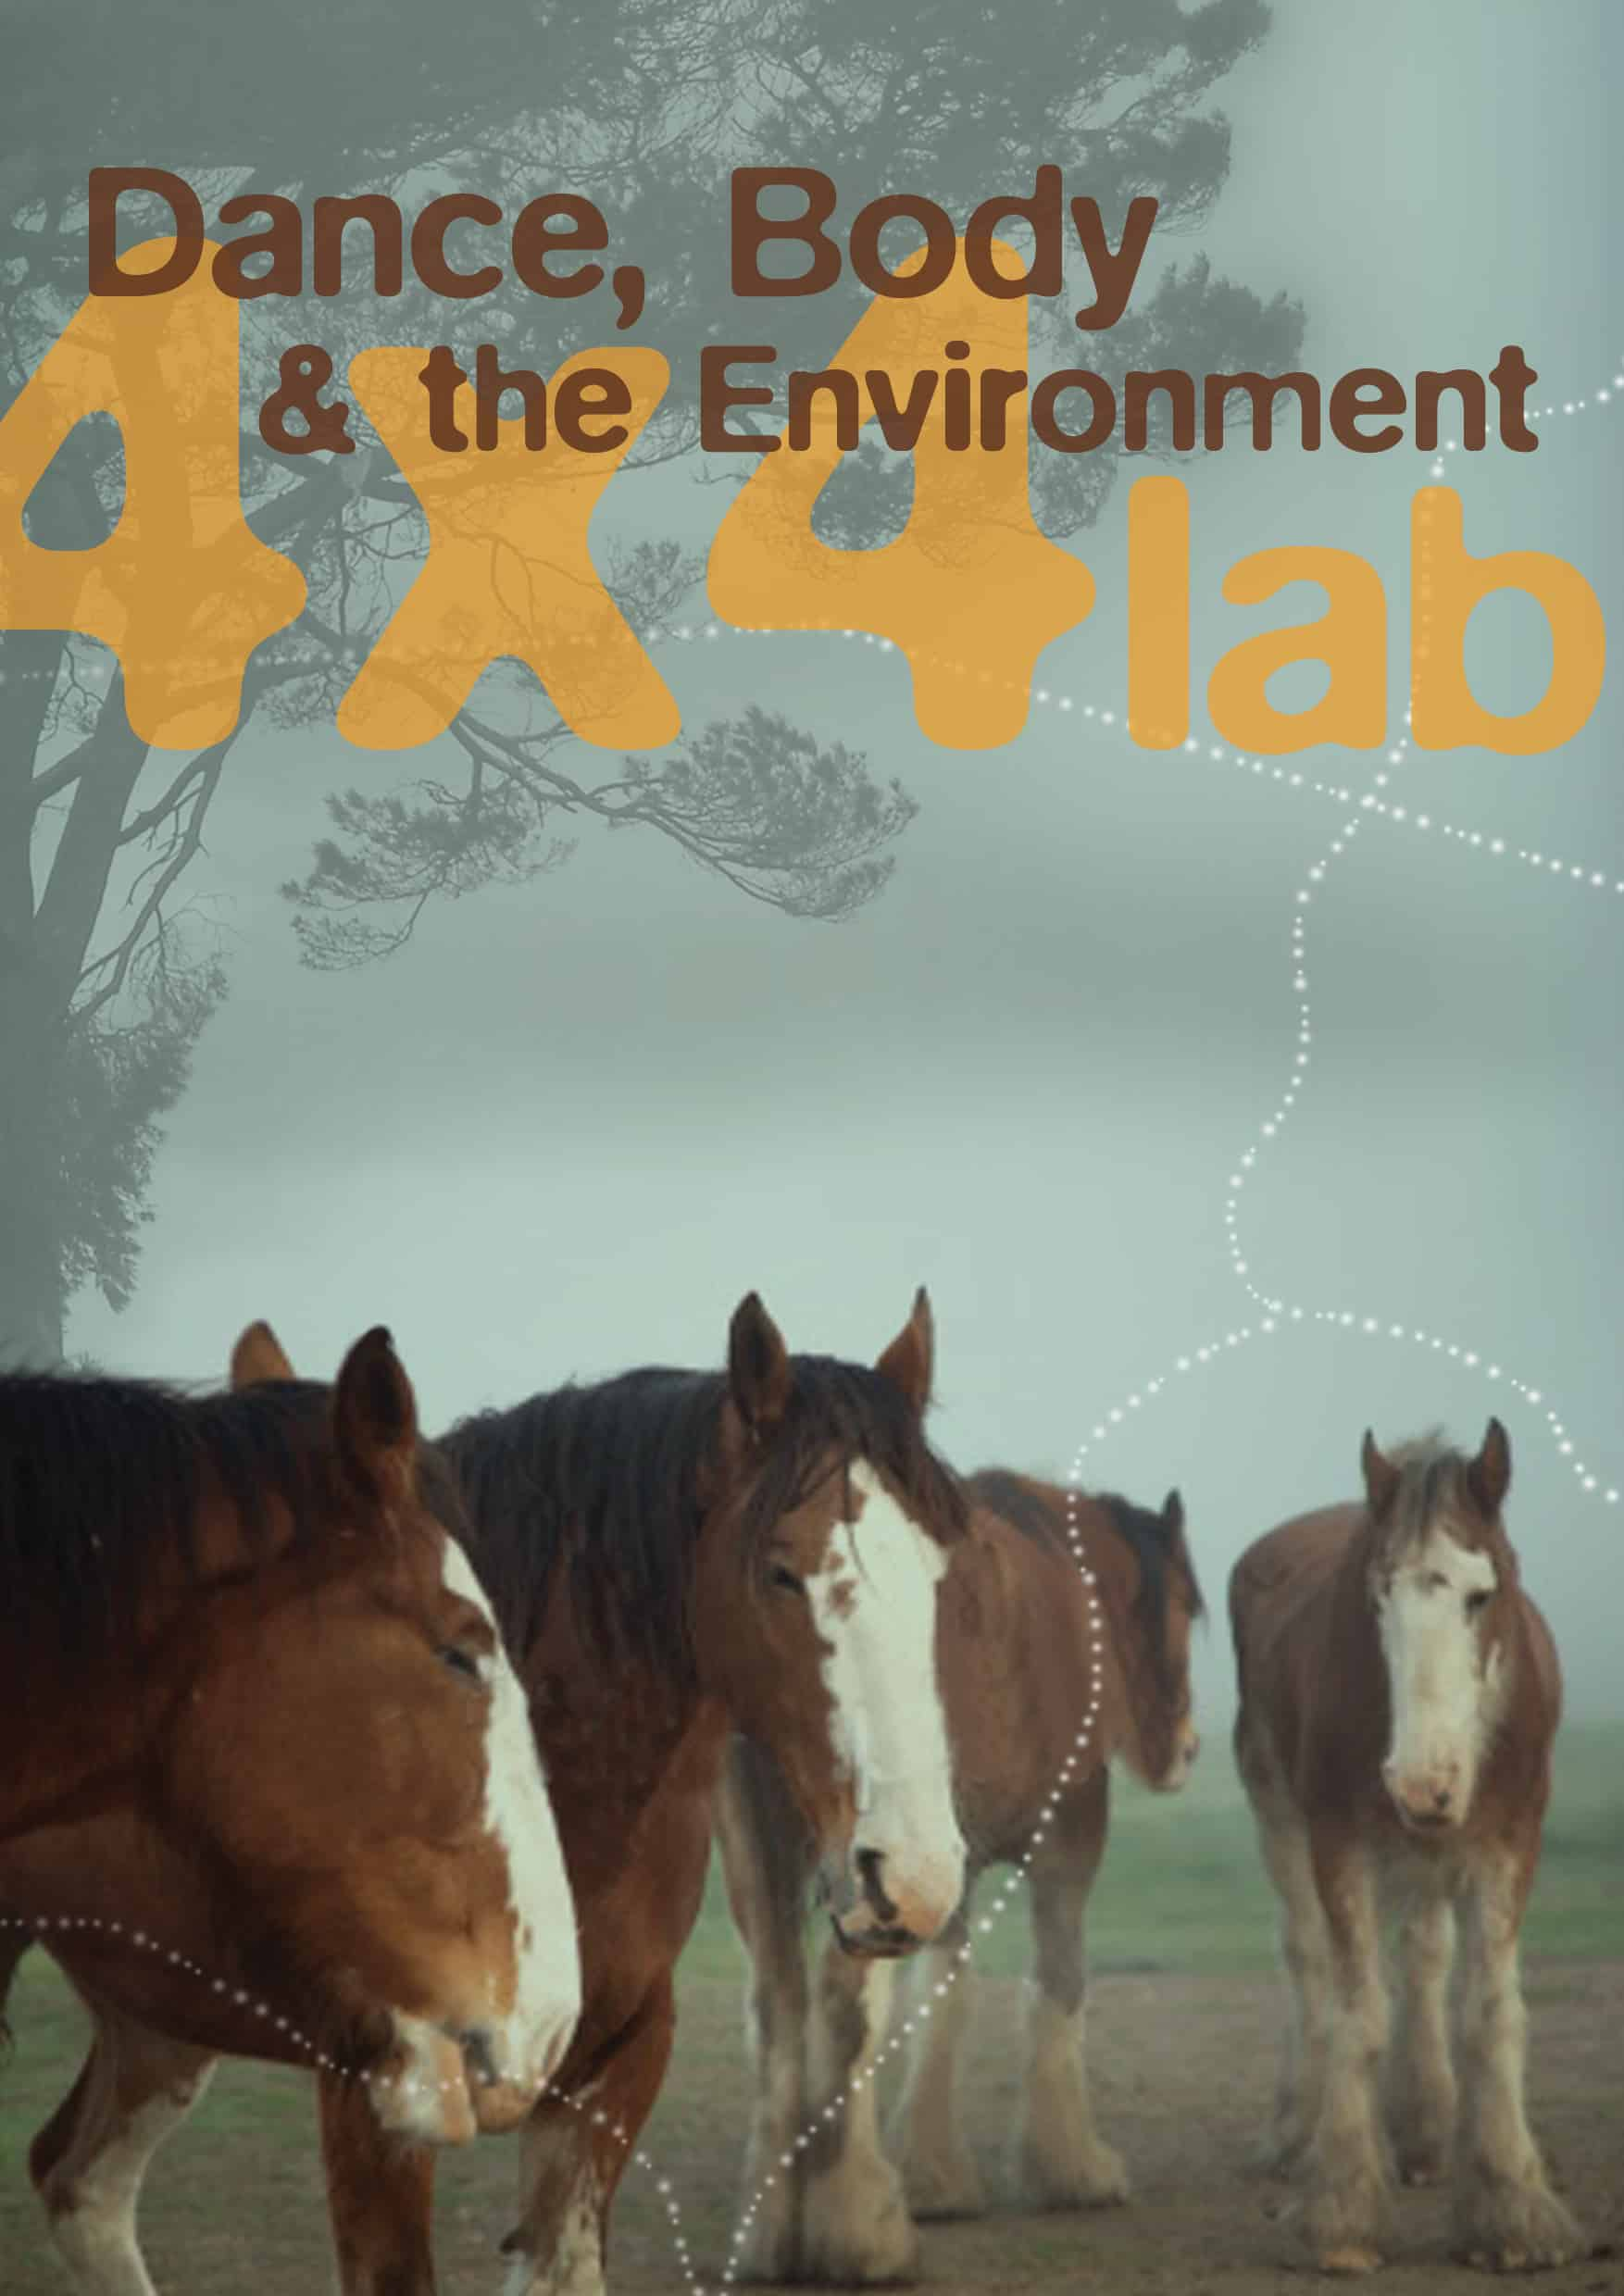 DO: 4×4 Dance, Body and the Environment